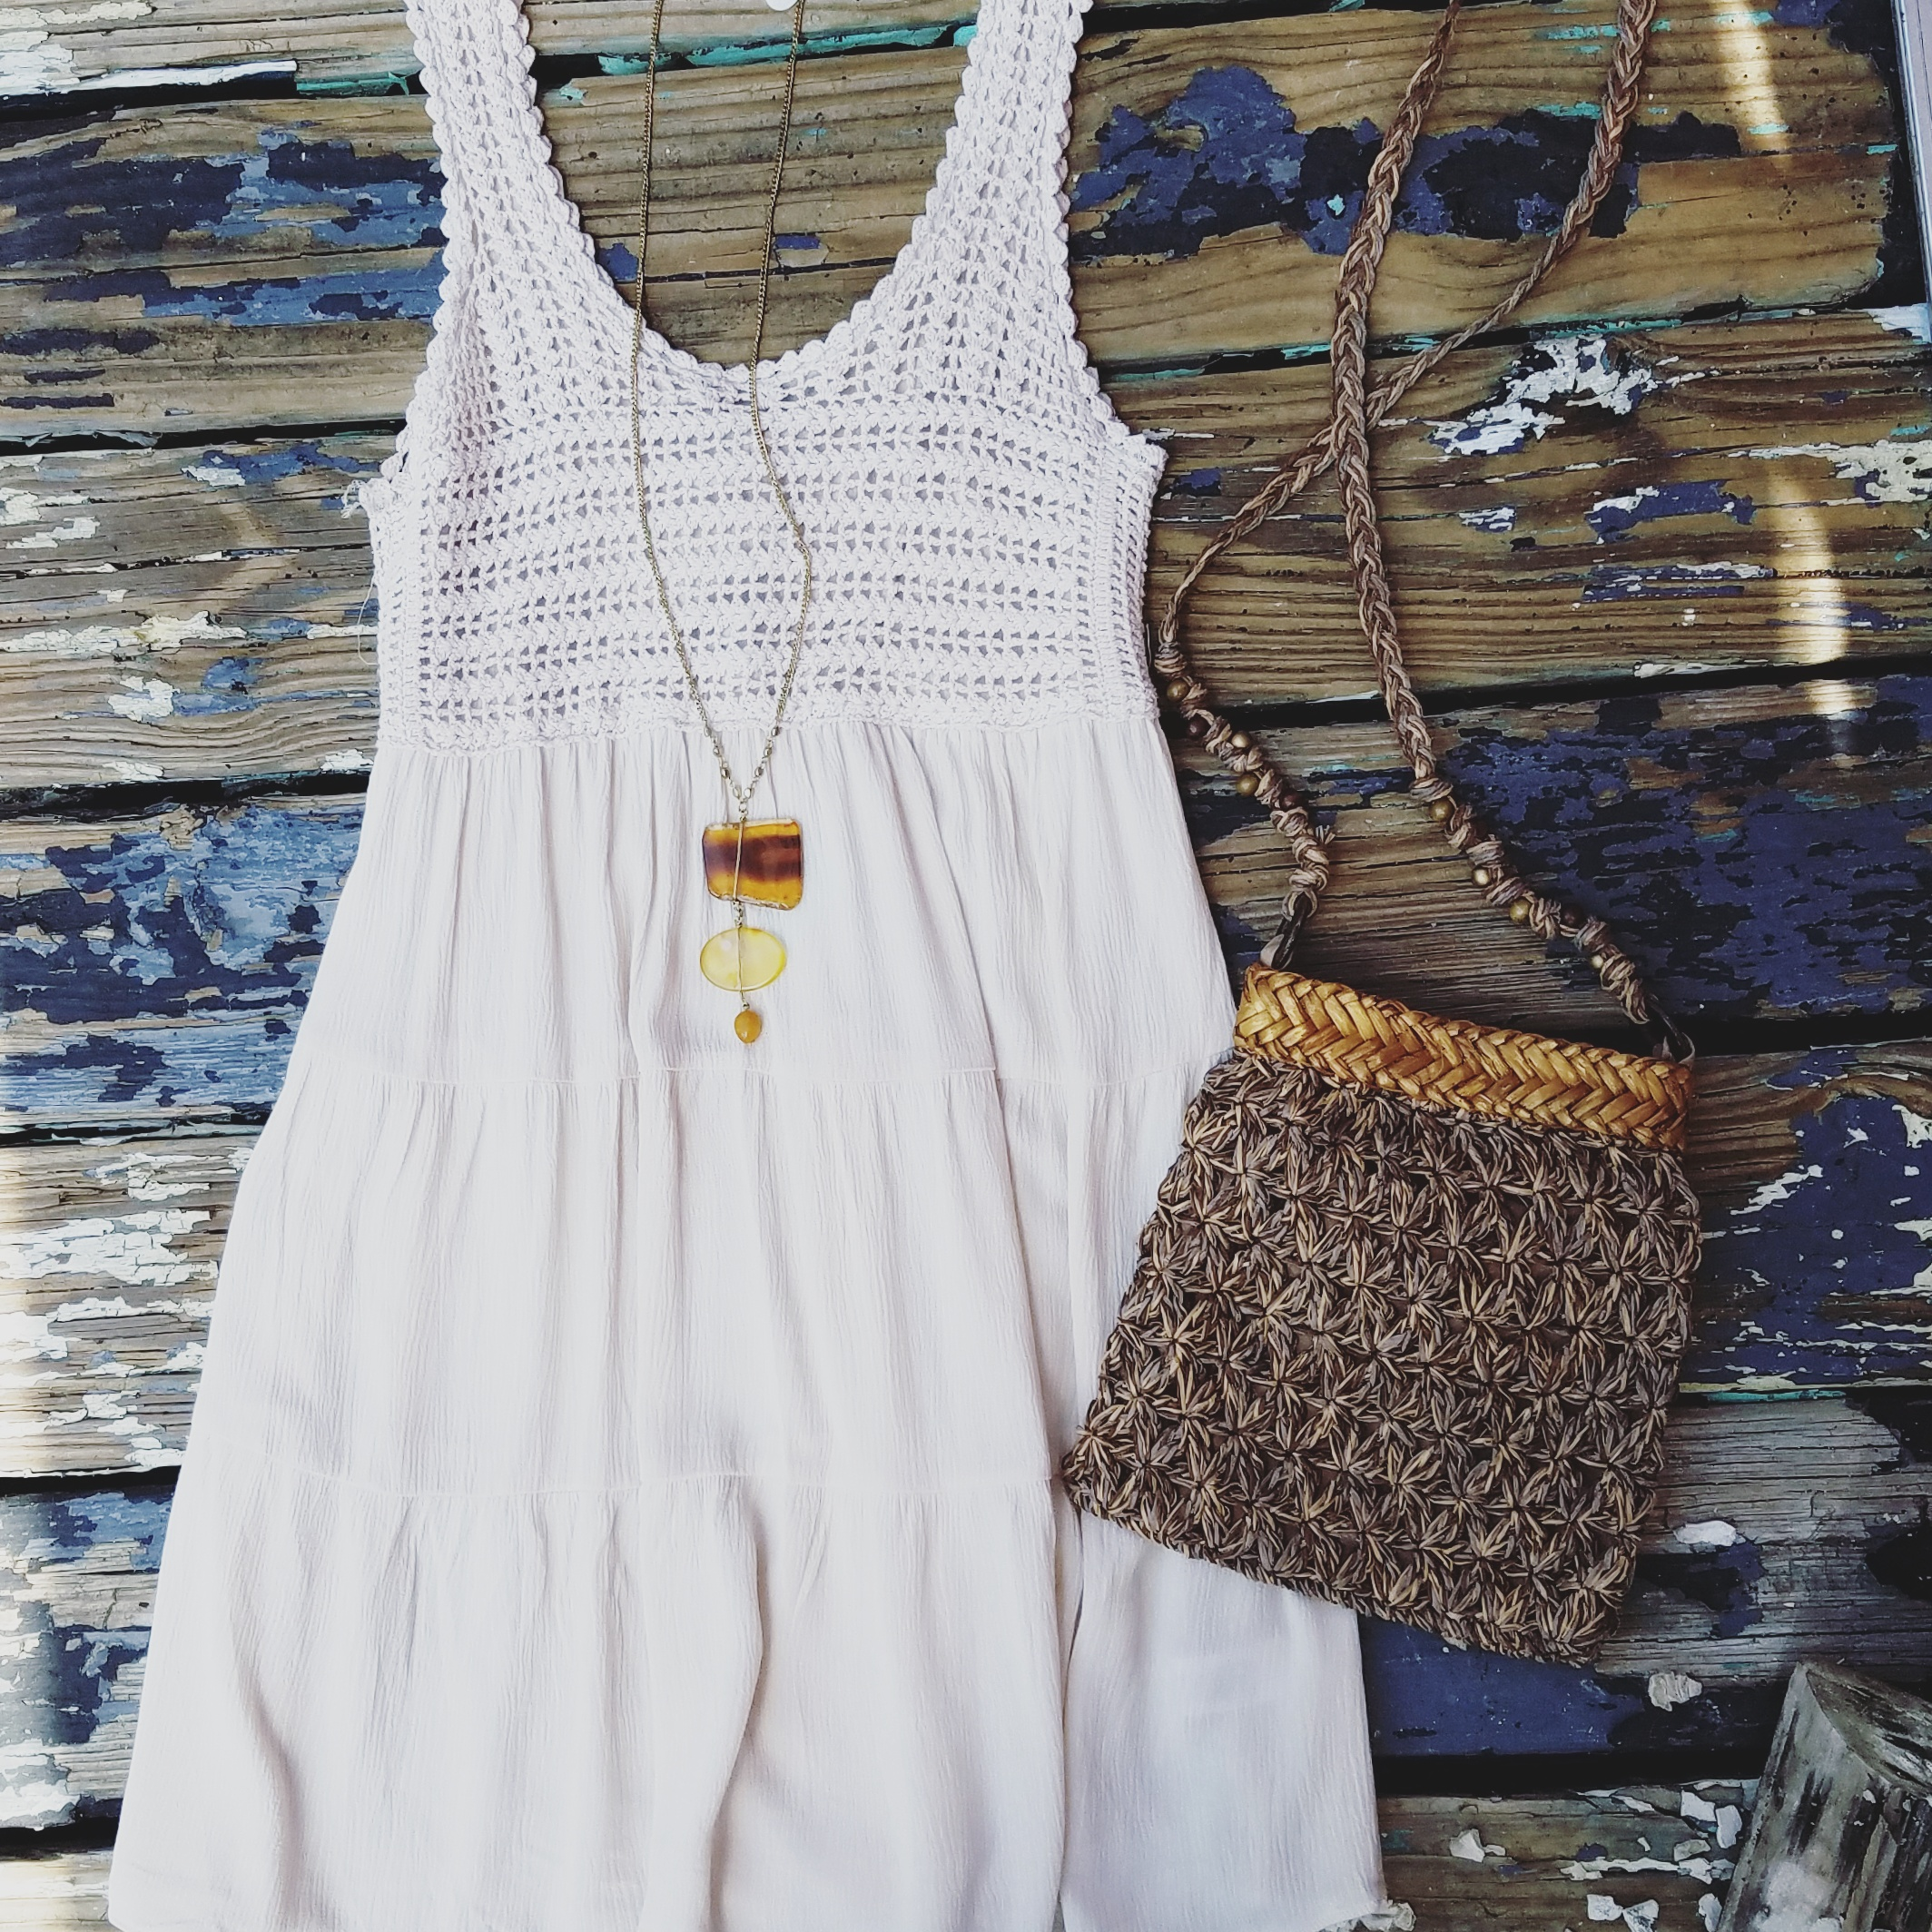 This sweet dress has us swooning! Perfect for a day on the beach or exploring the city. Pair with a straw cross-body bag and natural stone necklace to complete the look.